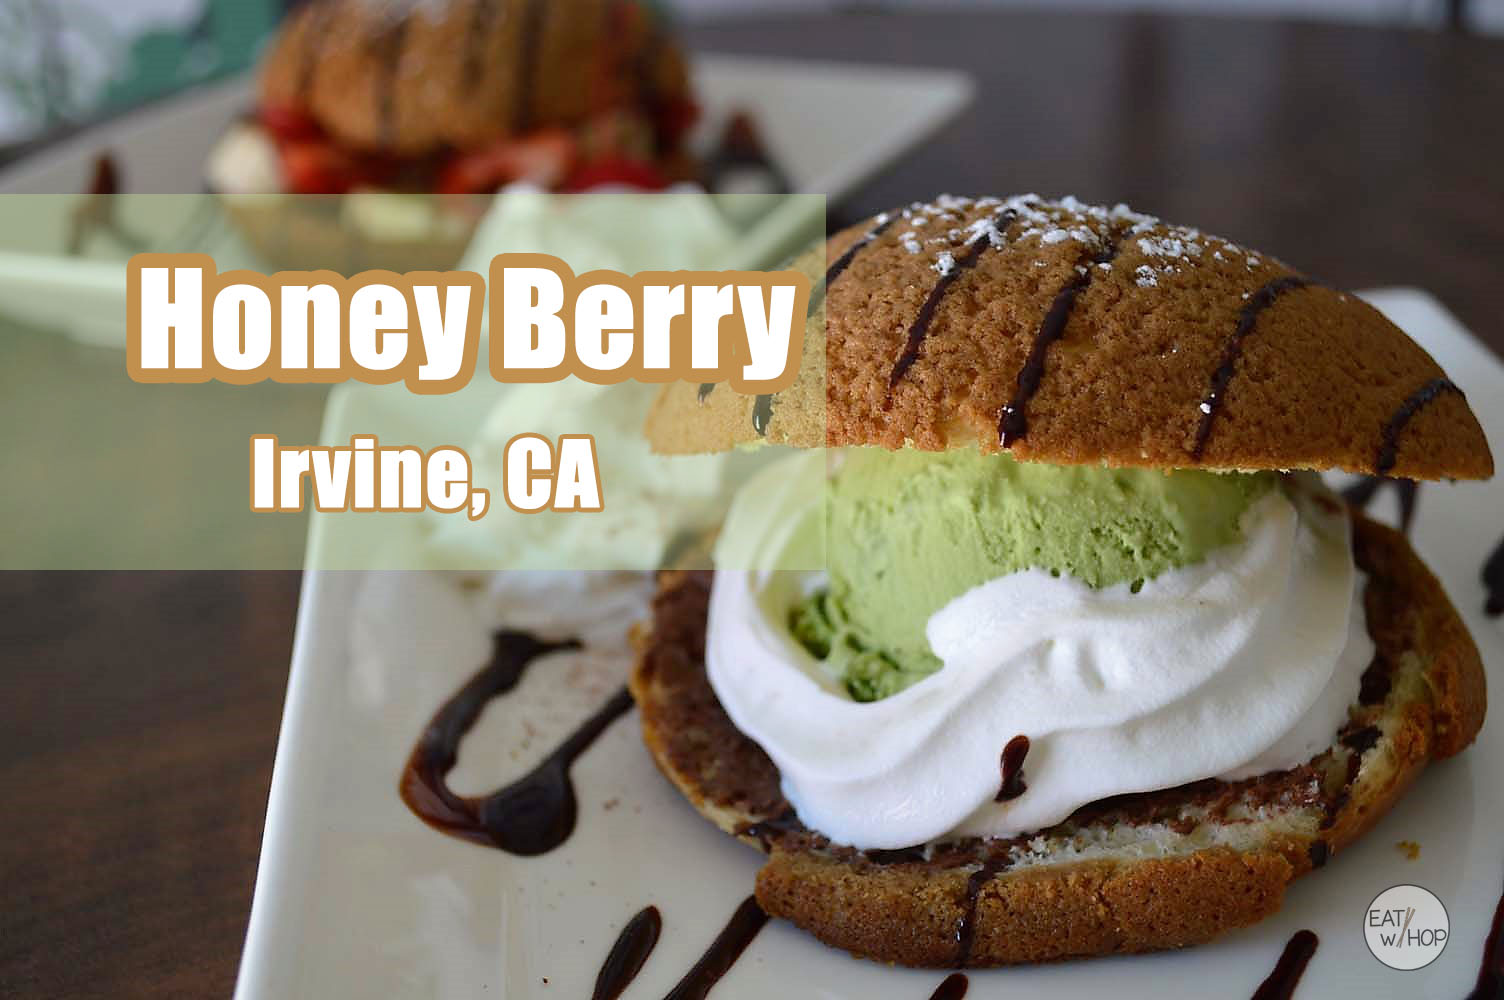 Freshly Baked Roti Buns, Shaved Snow, Teas & Corn Milk Too! Get It All @ HoneyBerry - Irvine